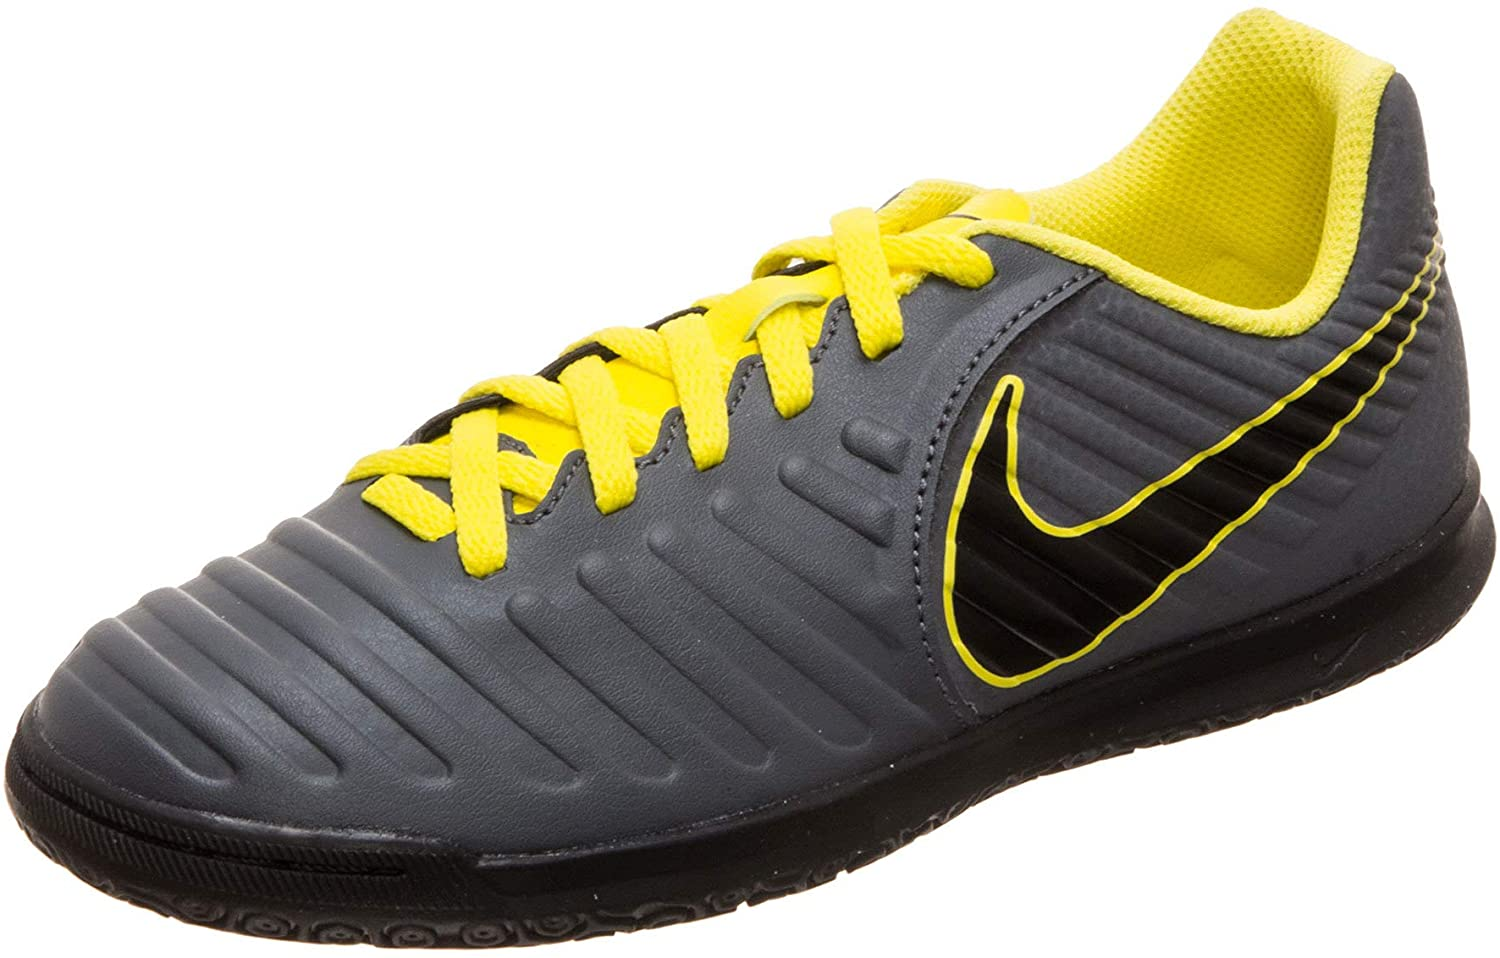 Nike Kids Jr LegendX 7 Club (IC) Indoor Soccer Shoe (4.5Y US, Grey/Yellow)